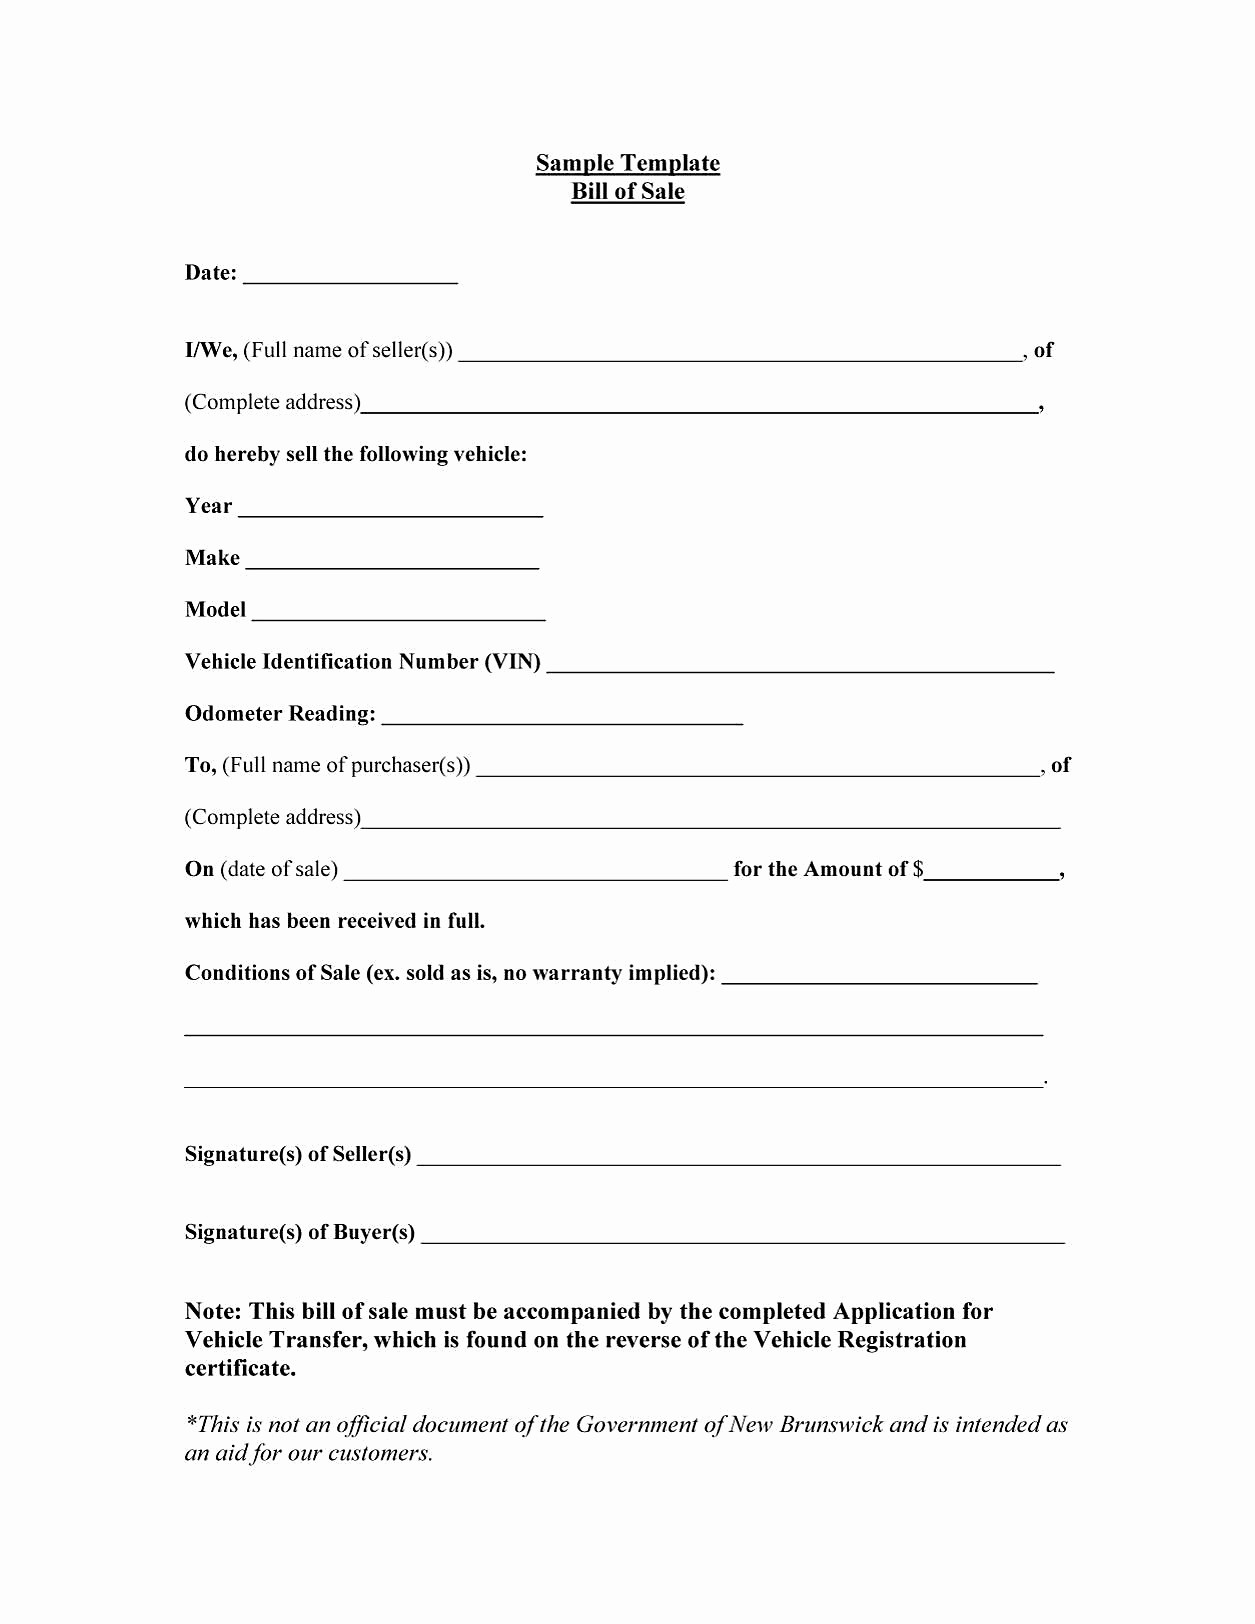 Automotive Bill Of Sale Sample Elegant Bill Sale Sample Document Mughals